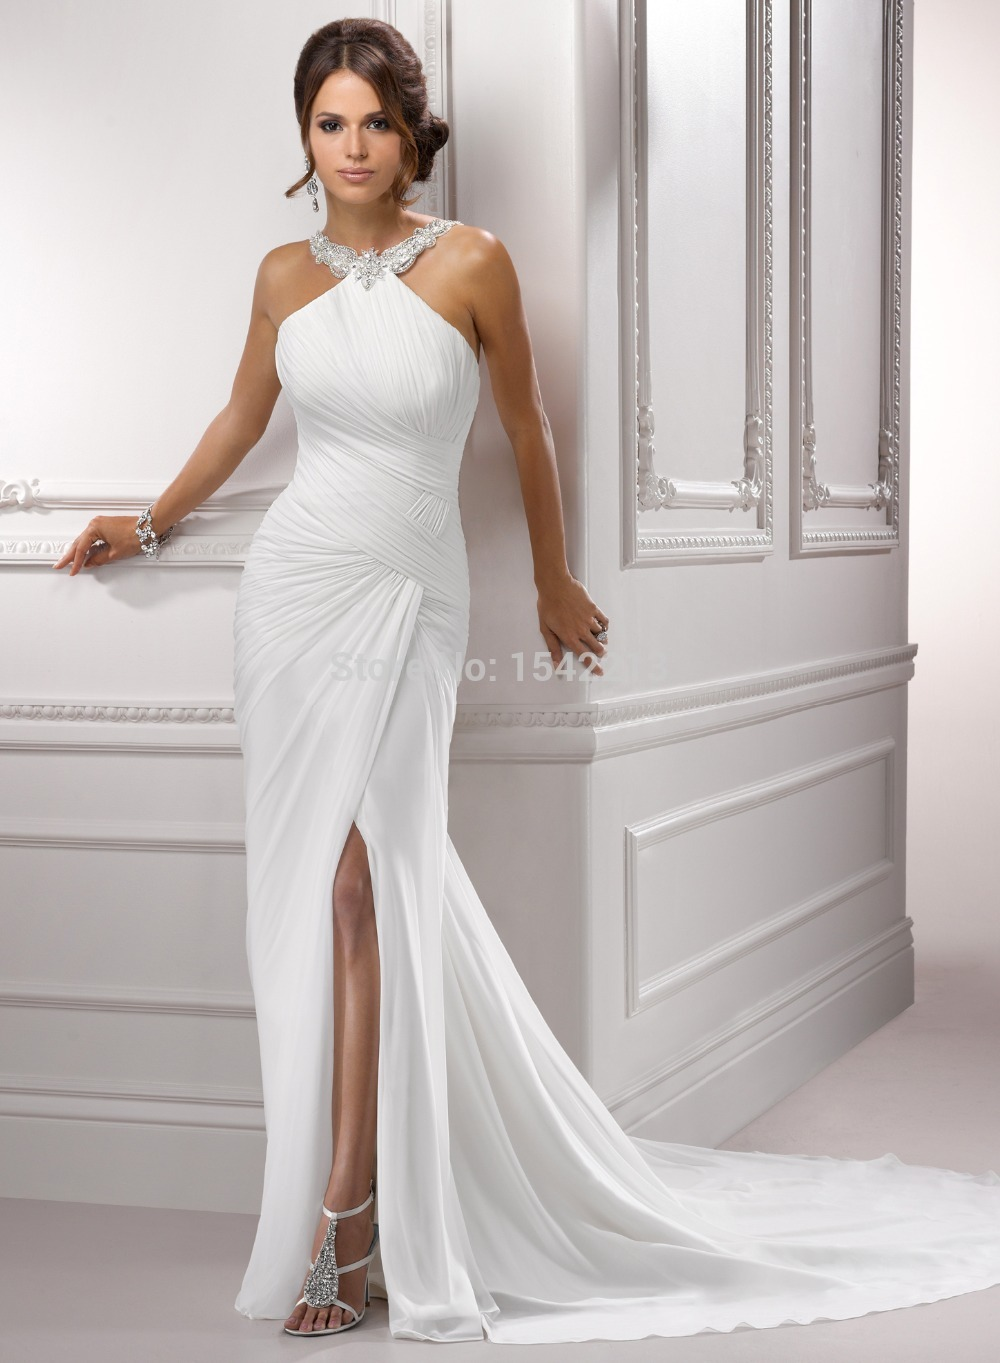 16bbb246189c2 2017 Slip Side Halter High Quality Backless Chiffon Summer Beach Wedding  Dress Mermaid Style Bridal Gowns Vestido De Renda-in Wedding Dresses from  Weddings ...